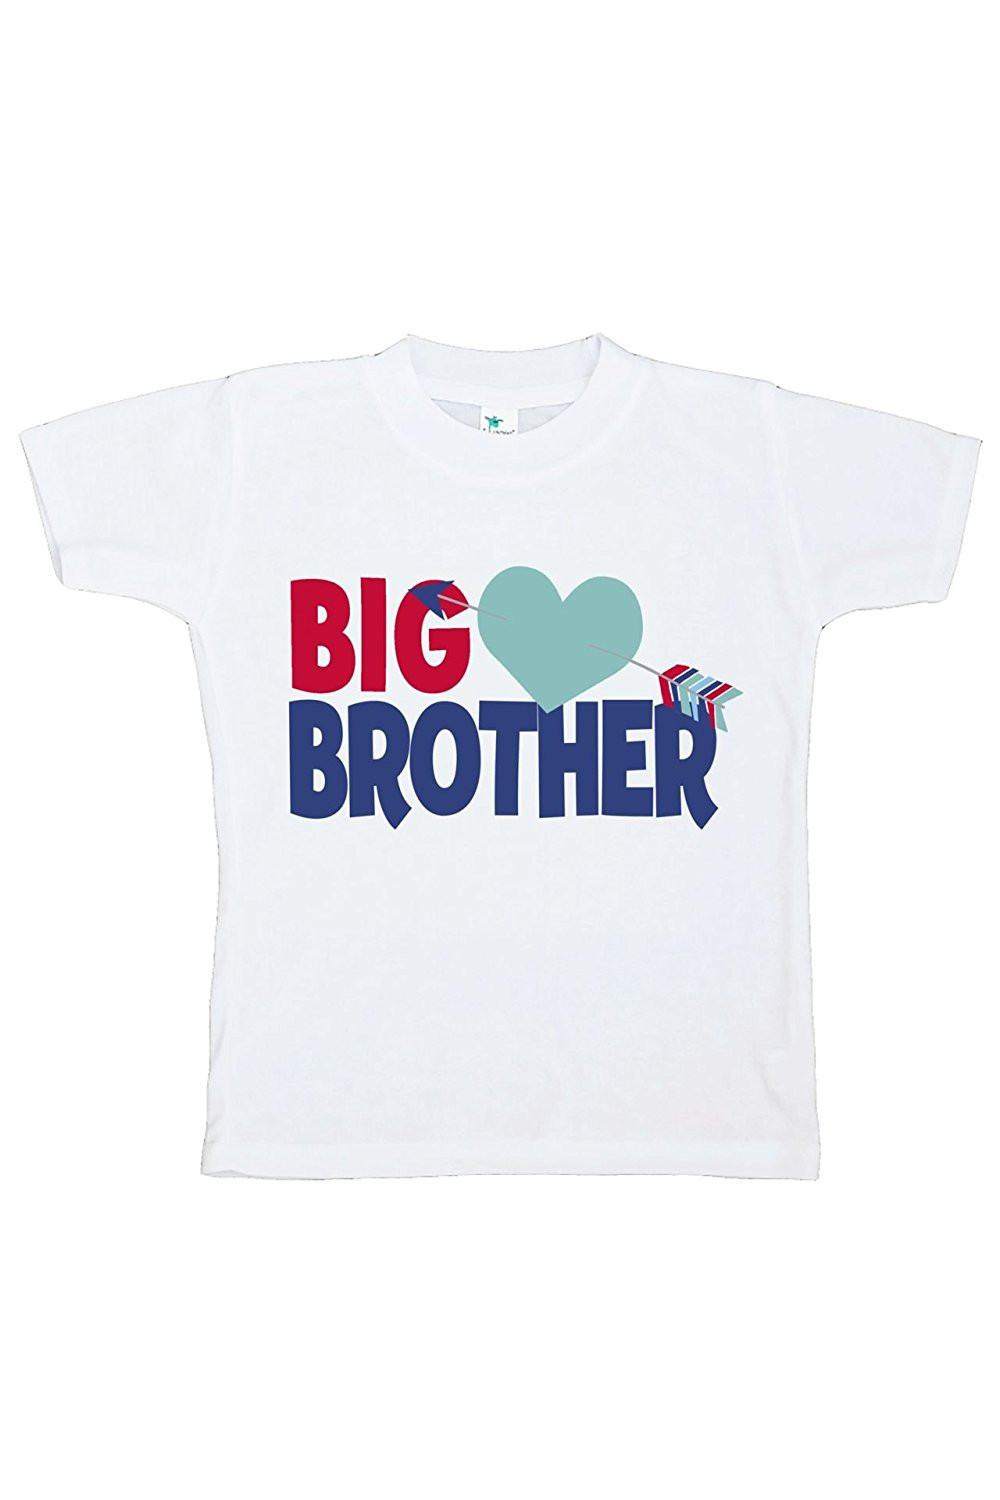 Custom Party Shop Boy's Big Brother Happy Valentine's Day T-shirt - 4T